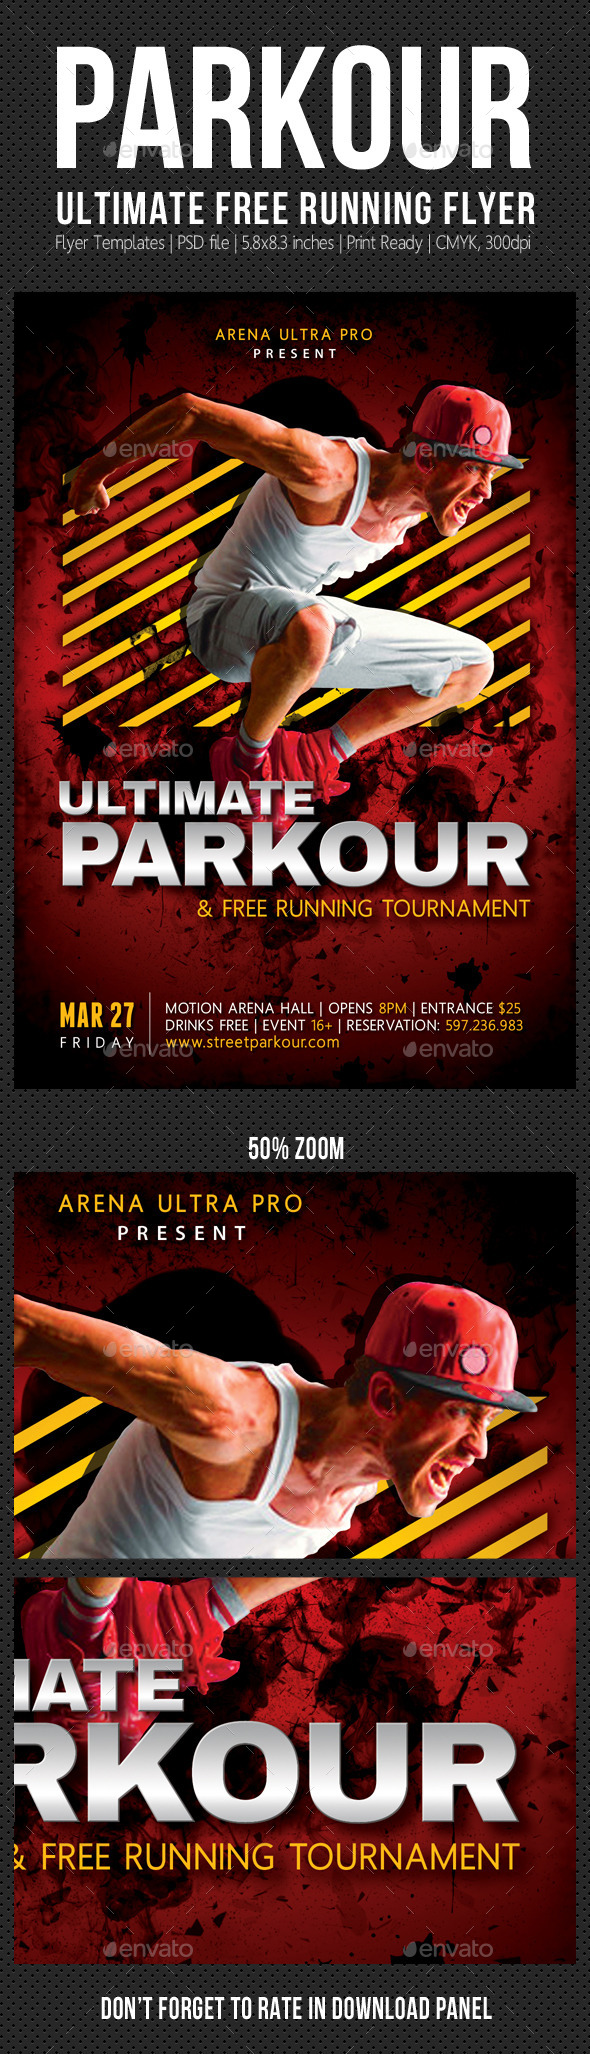 Ultimate Parkour Free Running Flyer V02 - Events Flyers